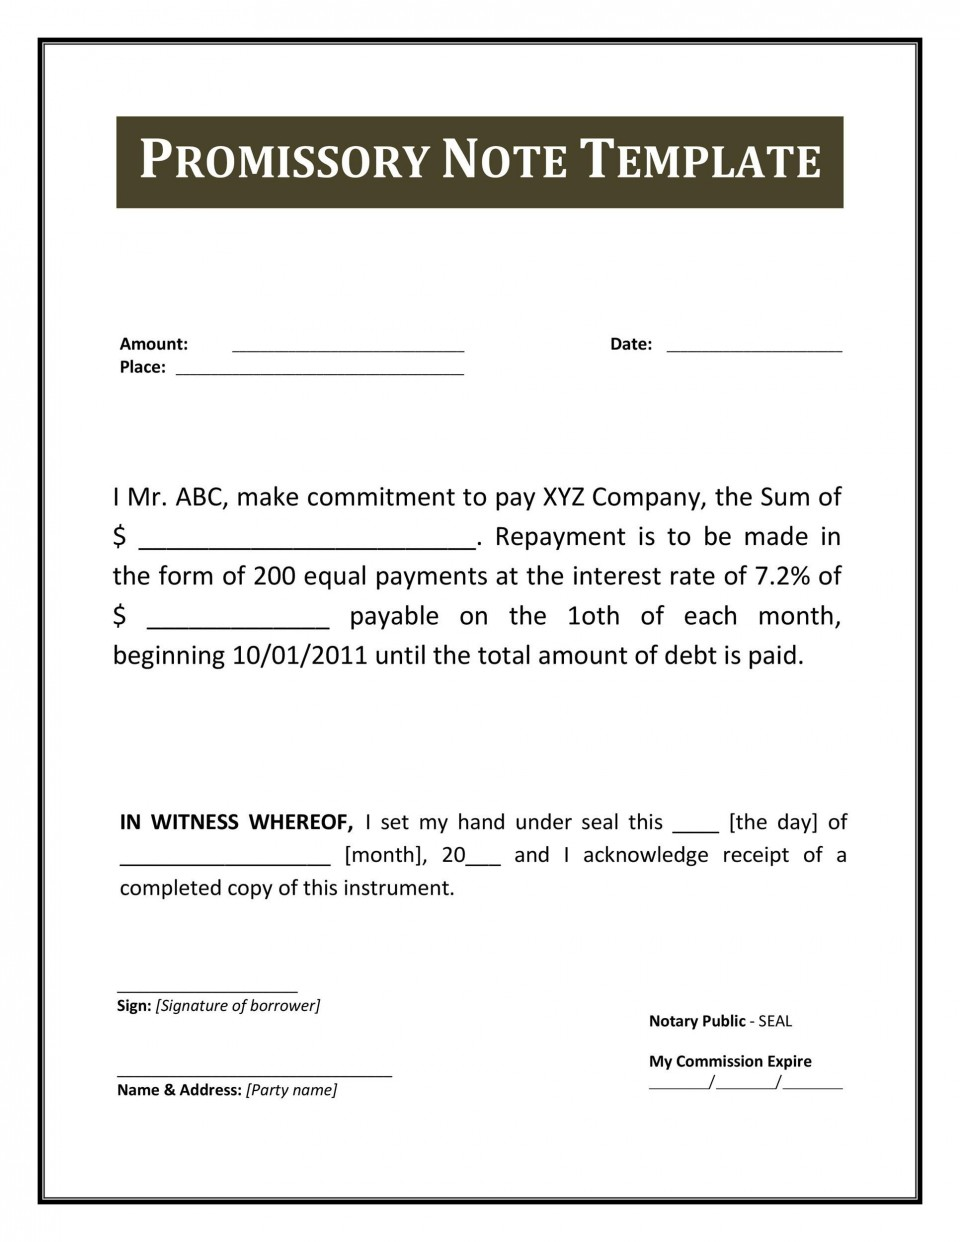 004 Breathtaking Promissory Note Template Word Sample  Form Document Free960